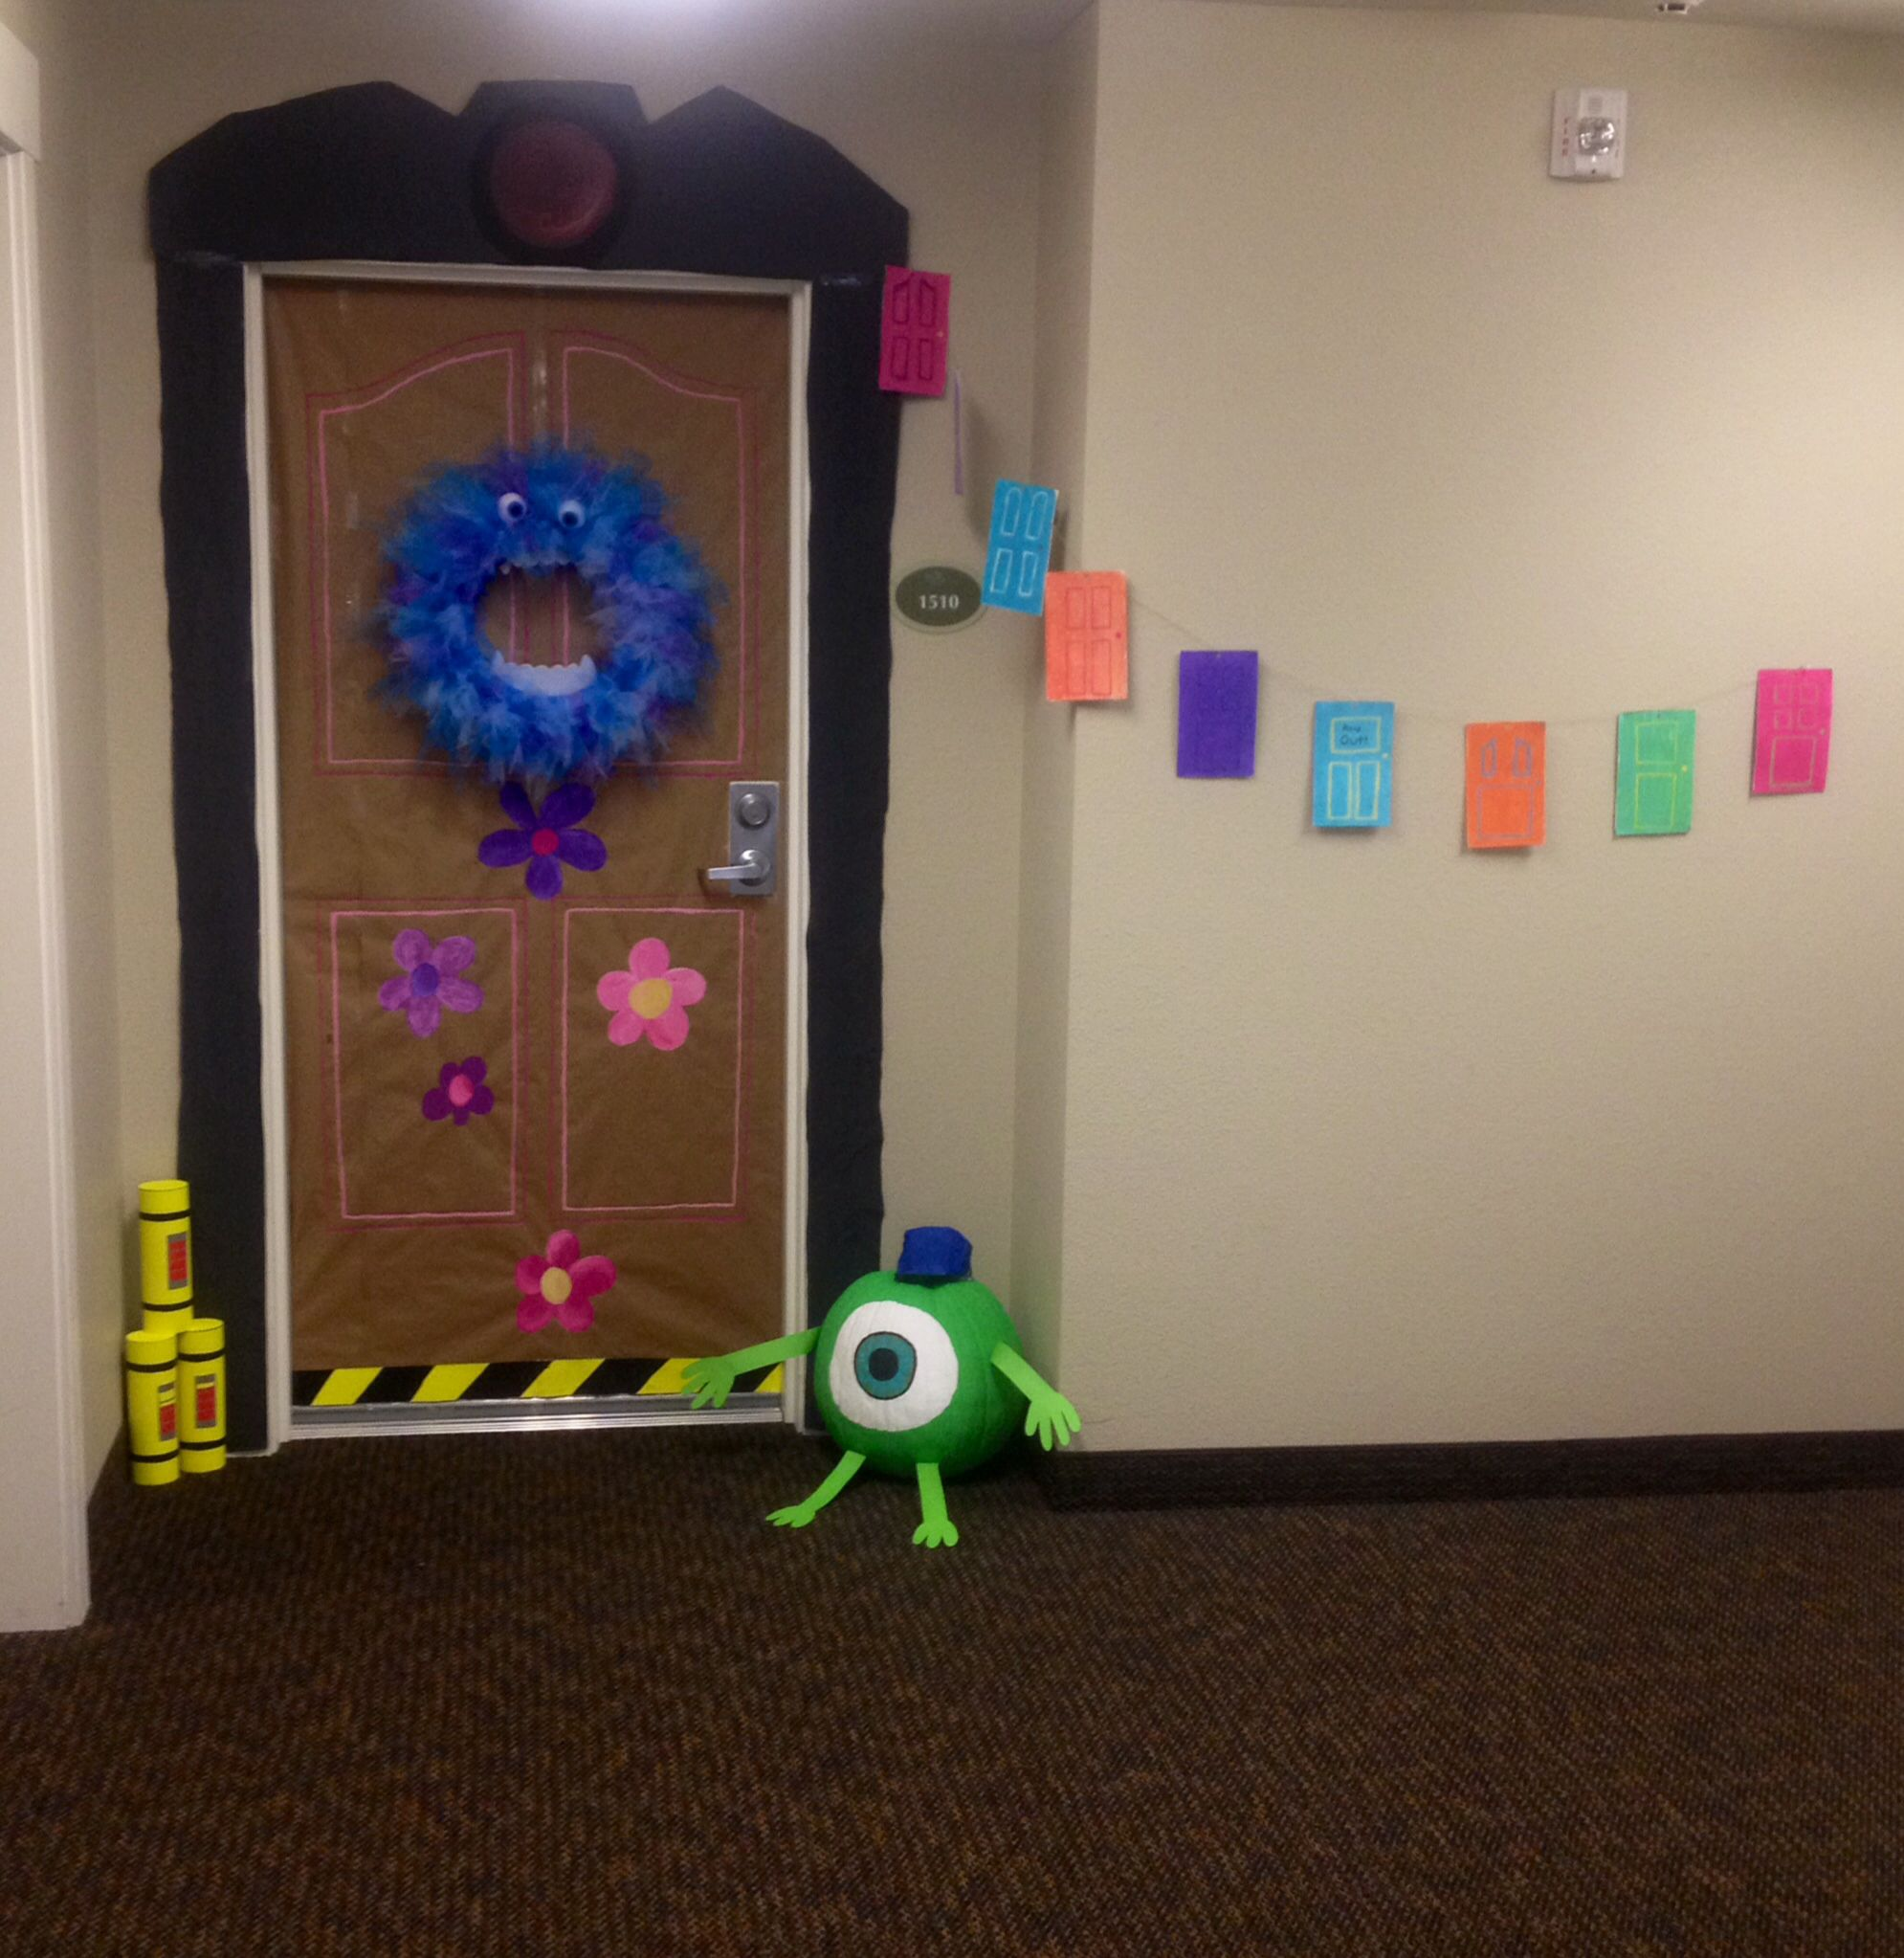 Halloween dorm door decorations - Monsters Inc Door Decoration For Halloween